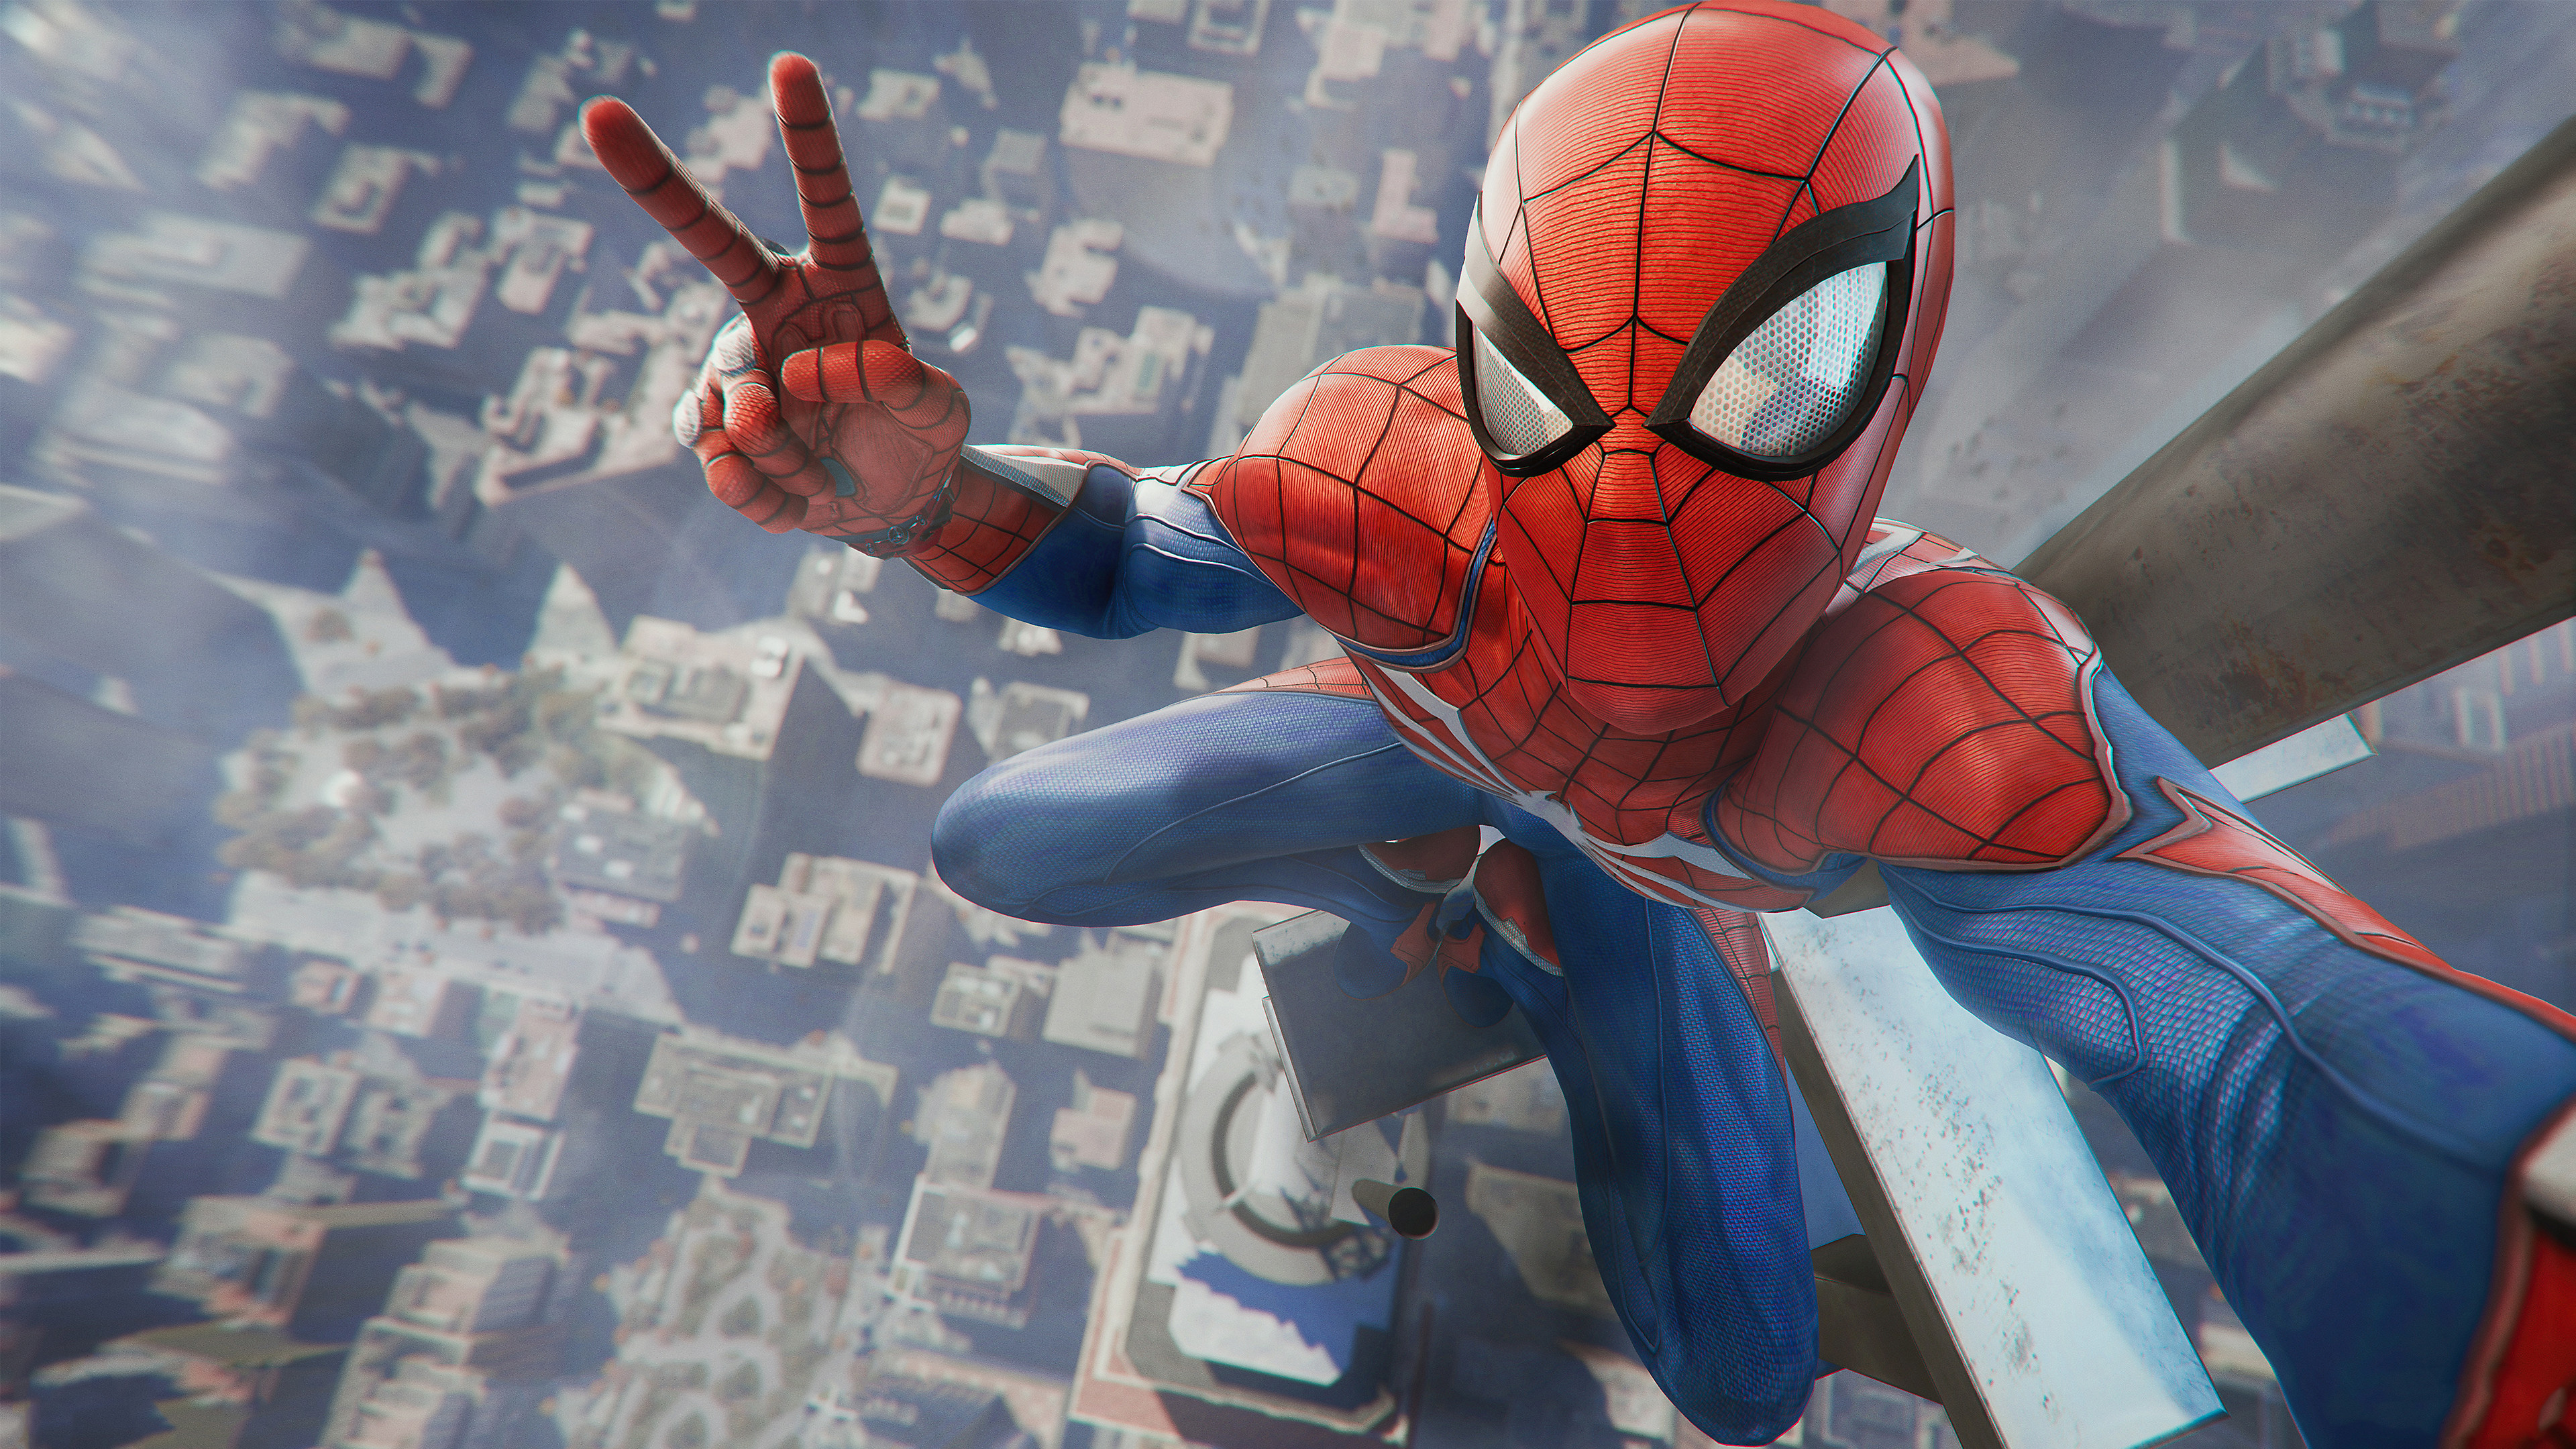 Spider Man Game Playstation 4 2018 4k Wallpapers Hd Wallpapers